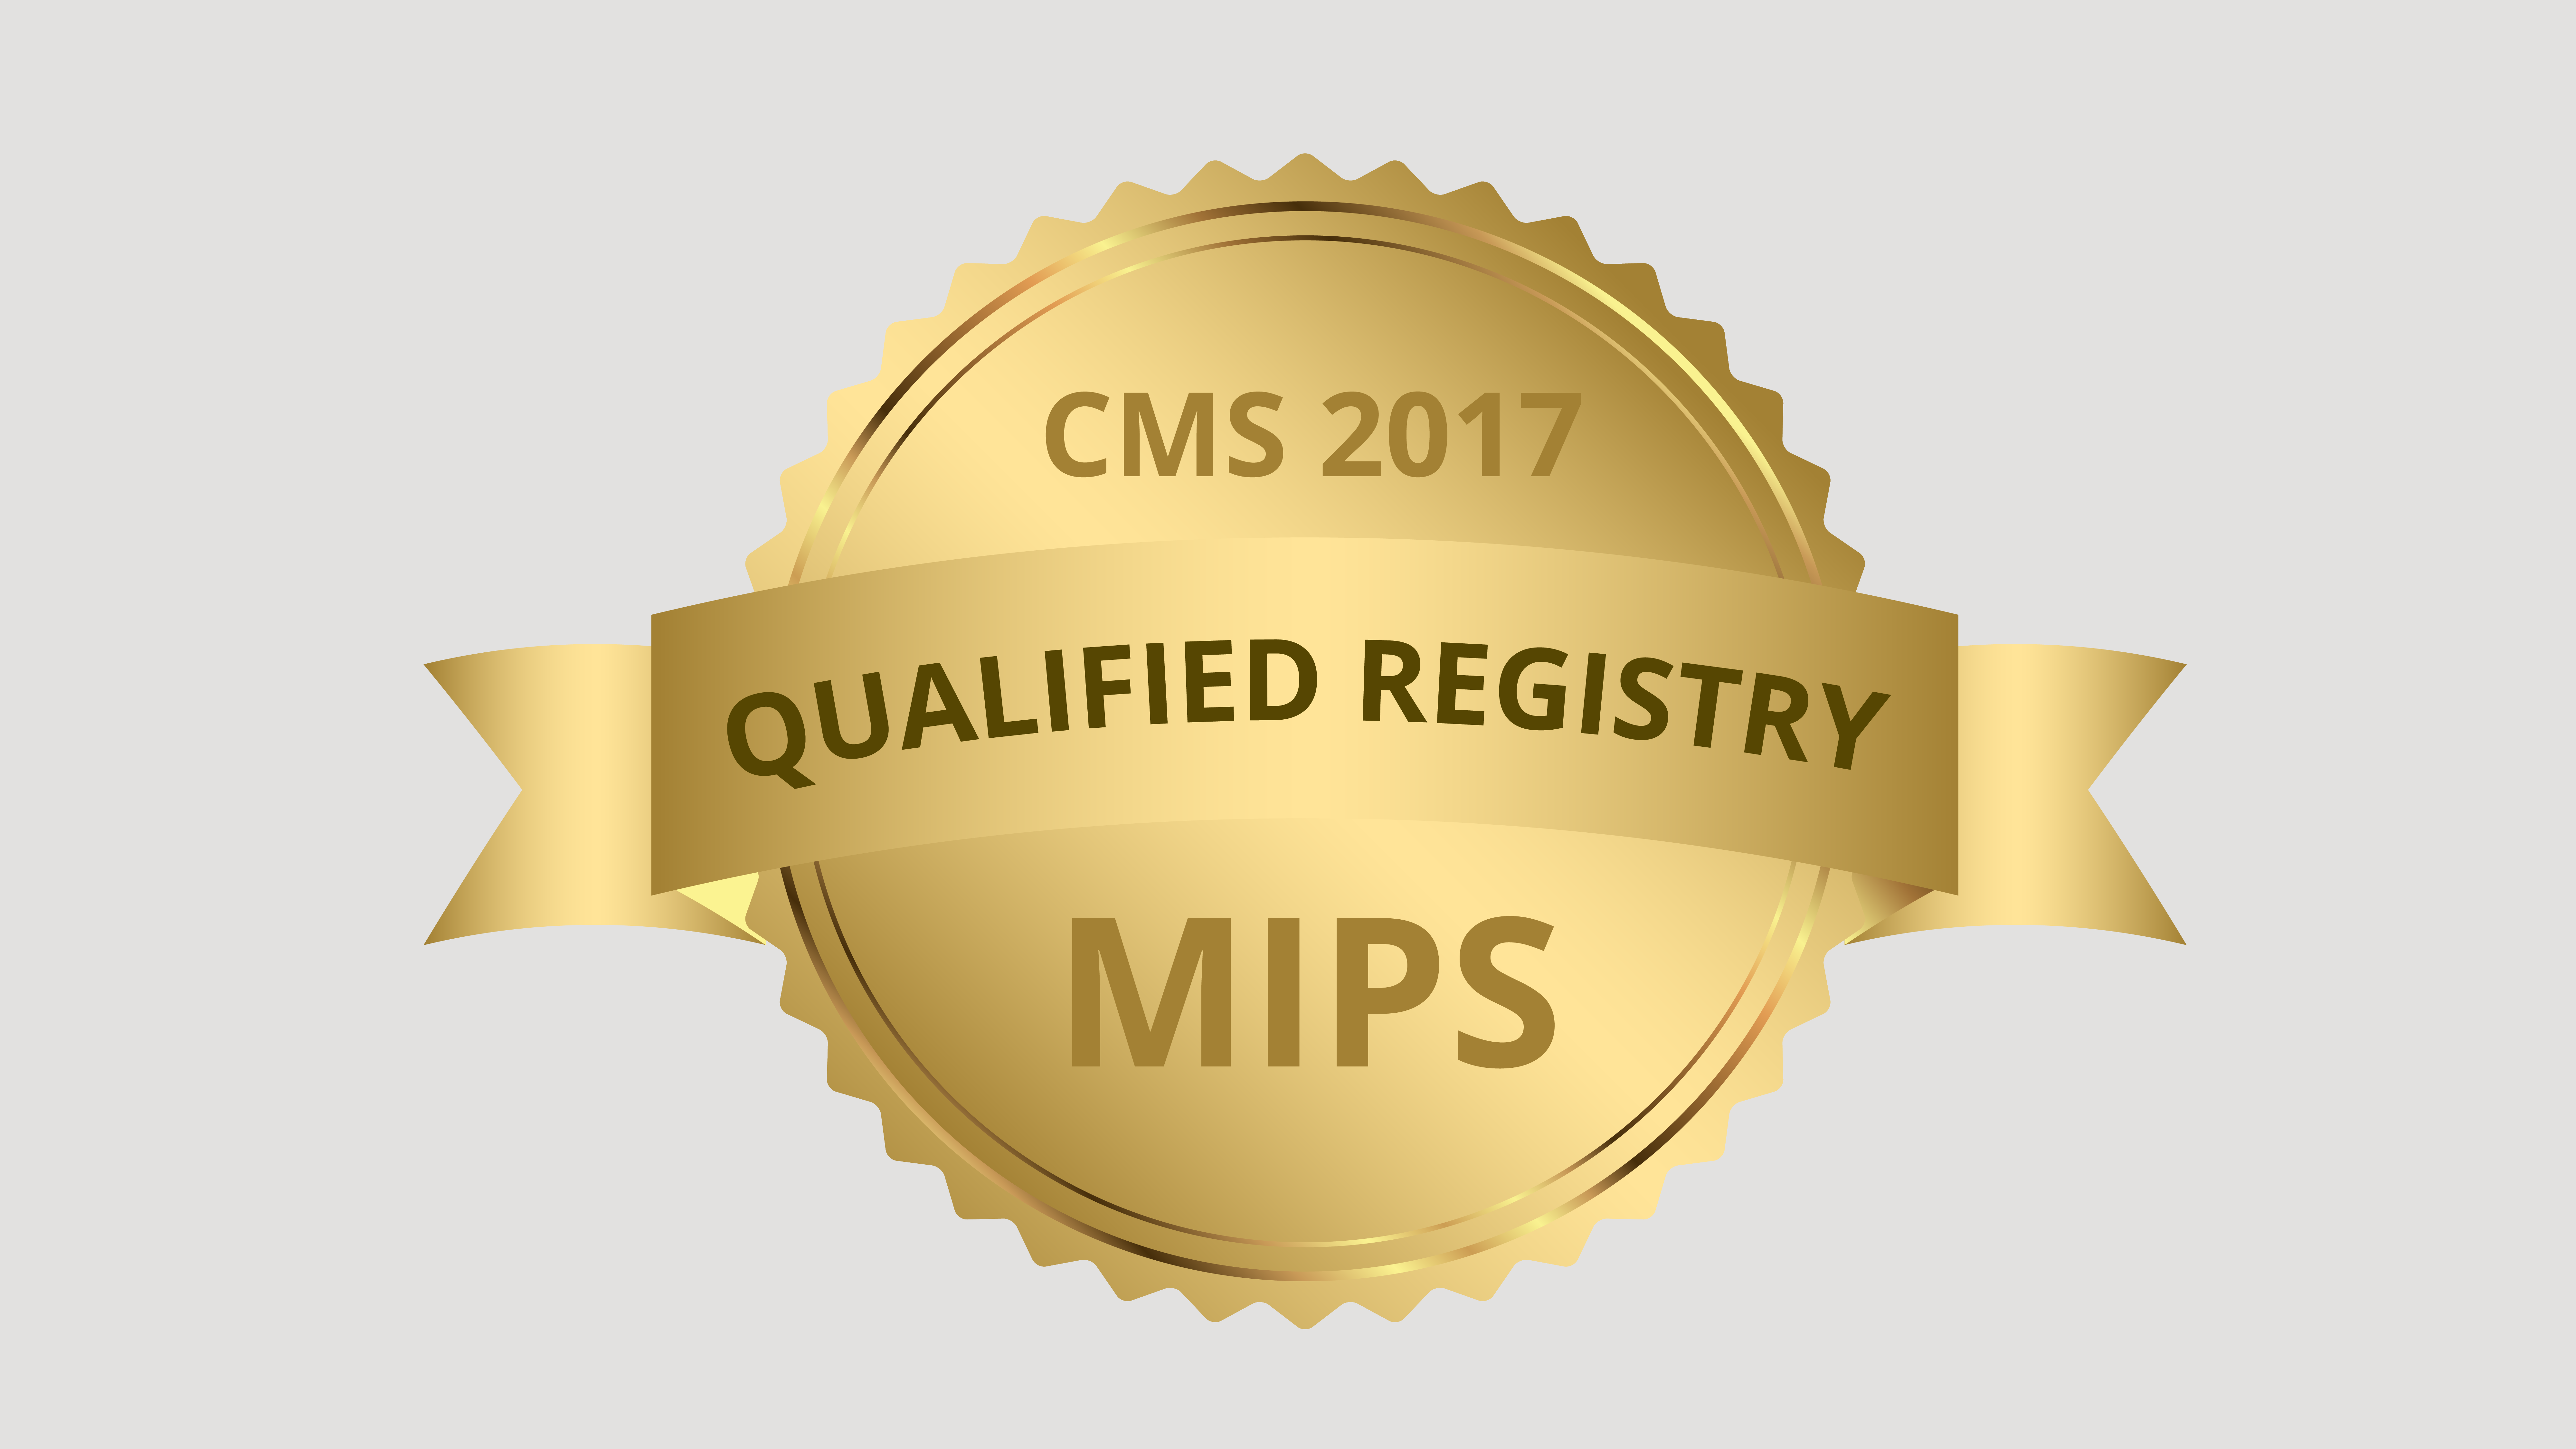 CMS Approves Medisolv as a 2017 MIPS Qualified Registry for the Quality Payment Program